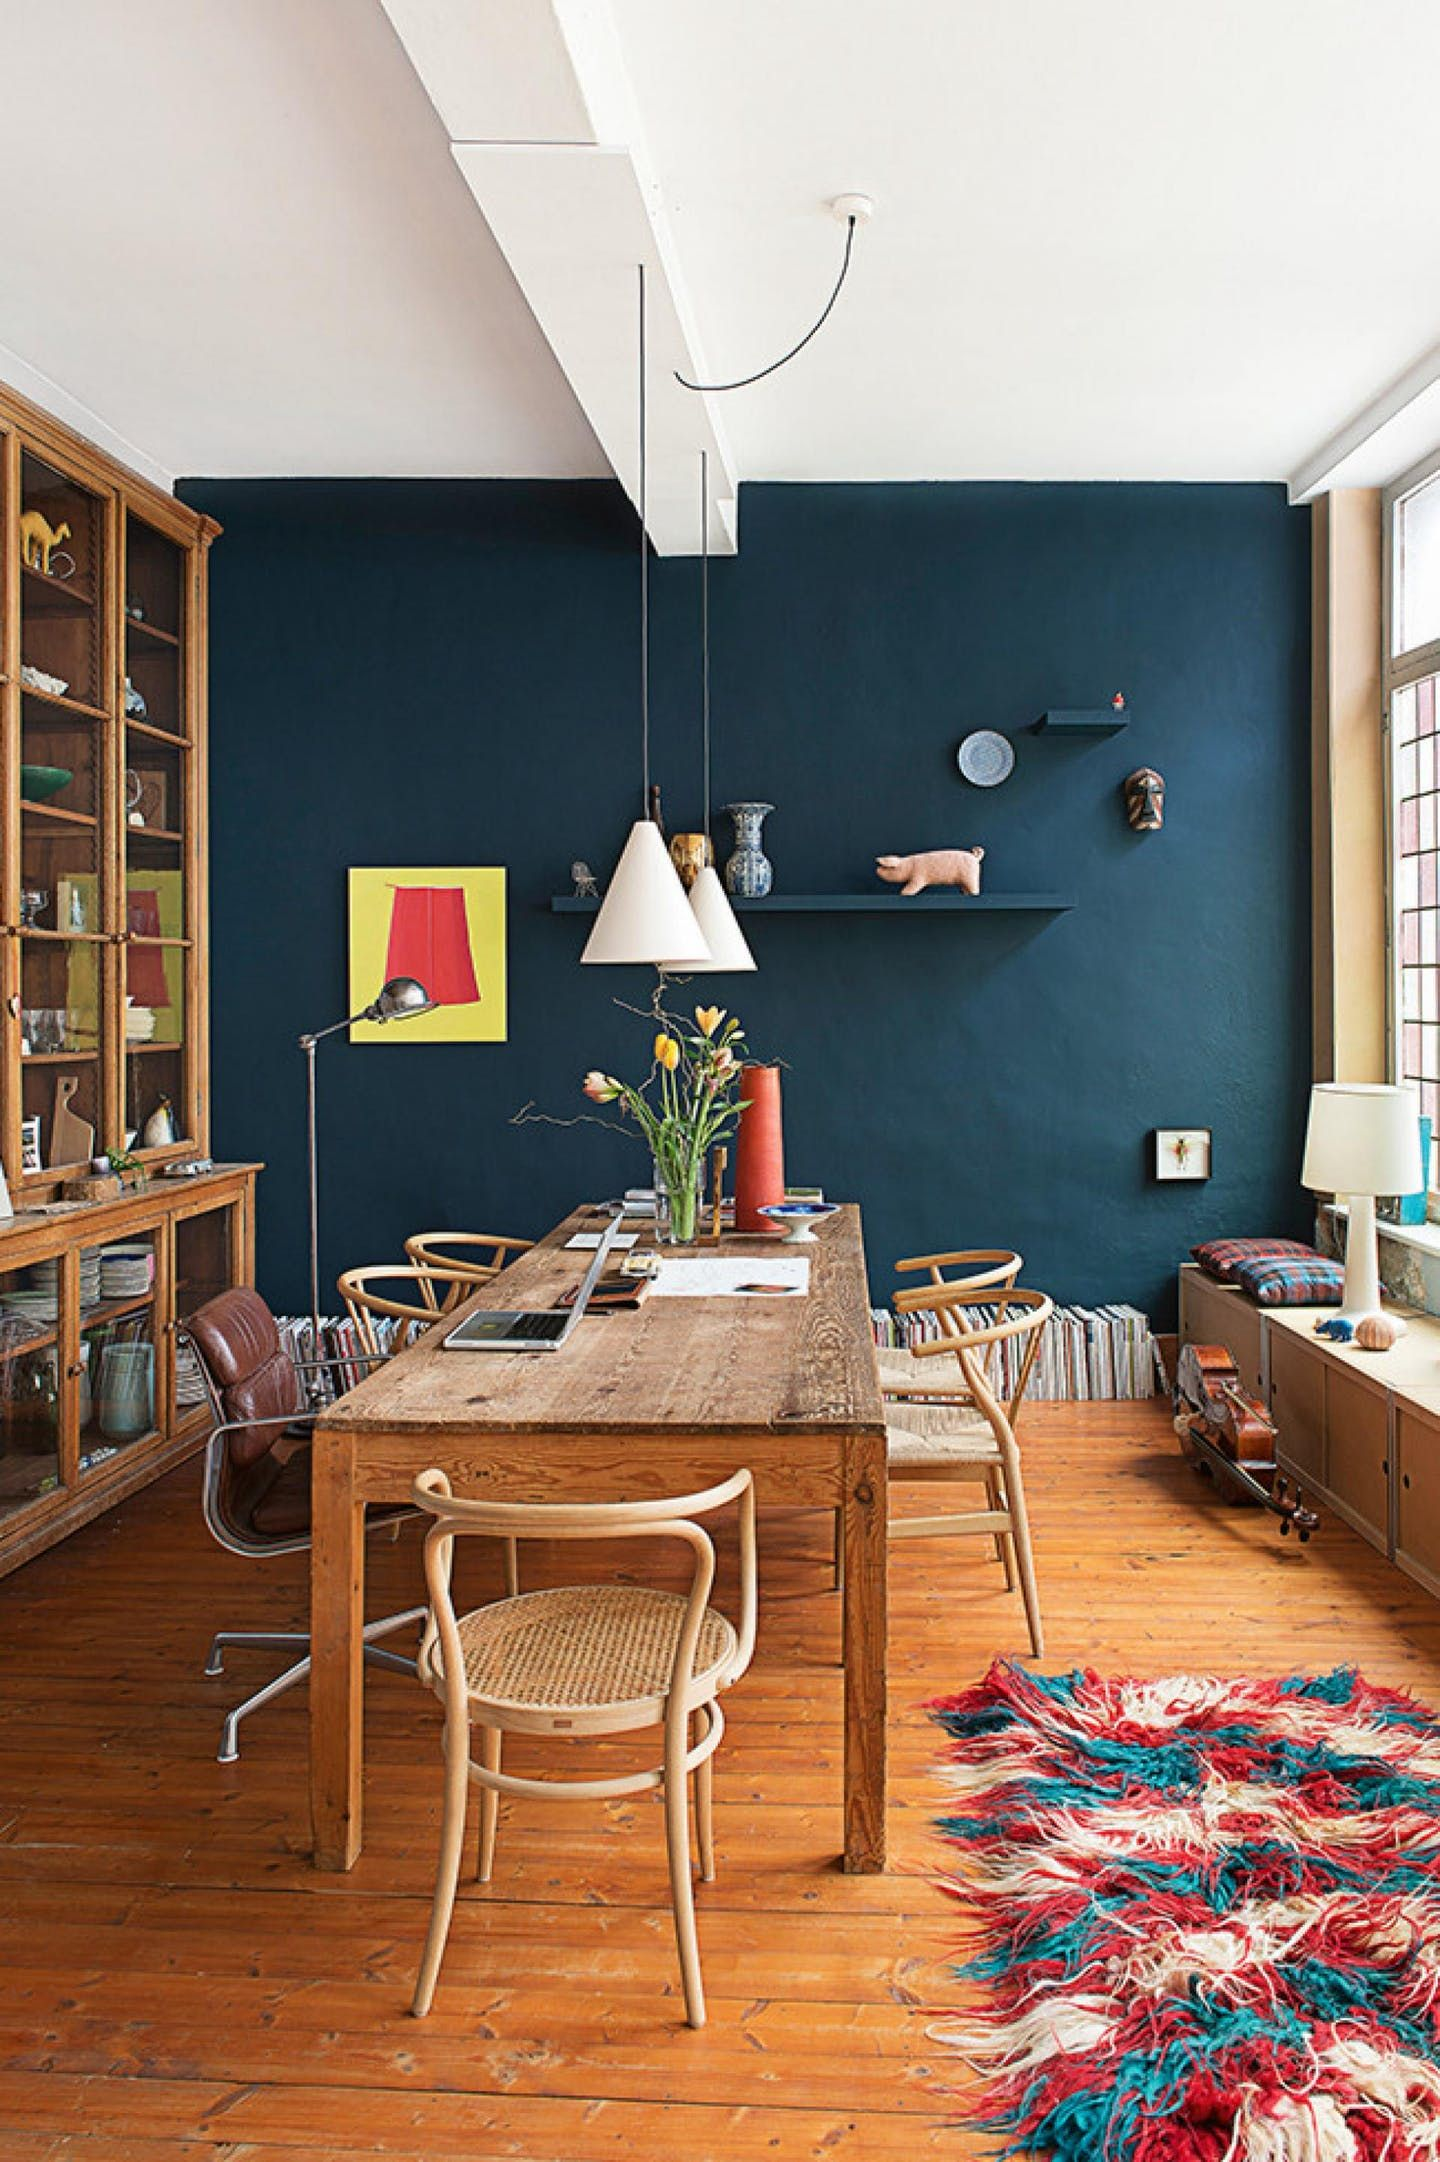 Accent wall paint ideas bedroom  Five Trending Paint Colors to Try This Fall  Lp Trending paint